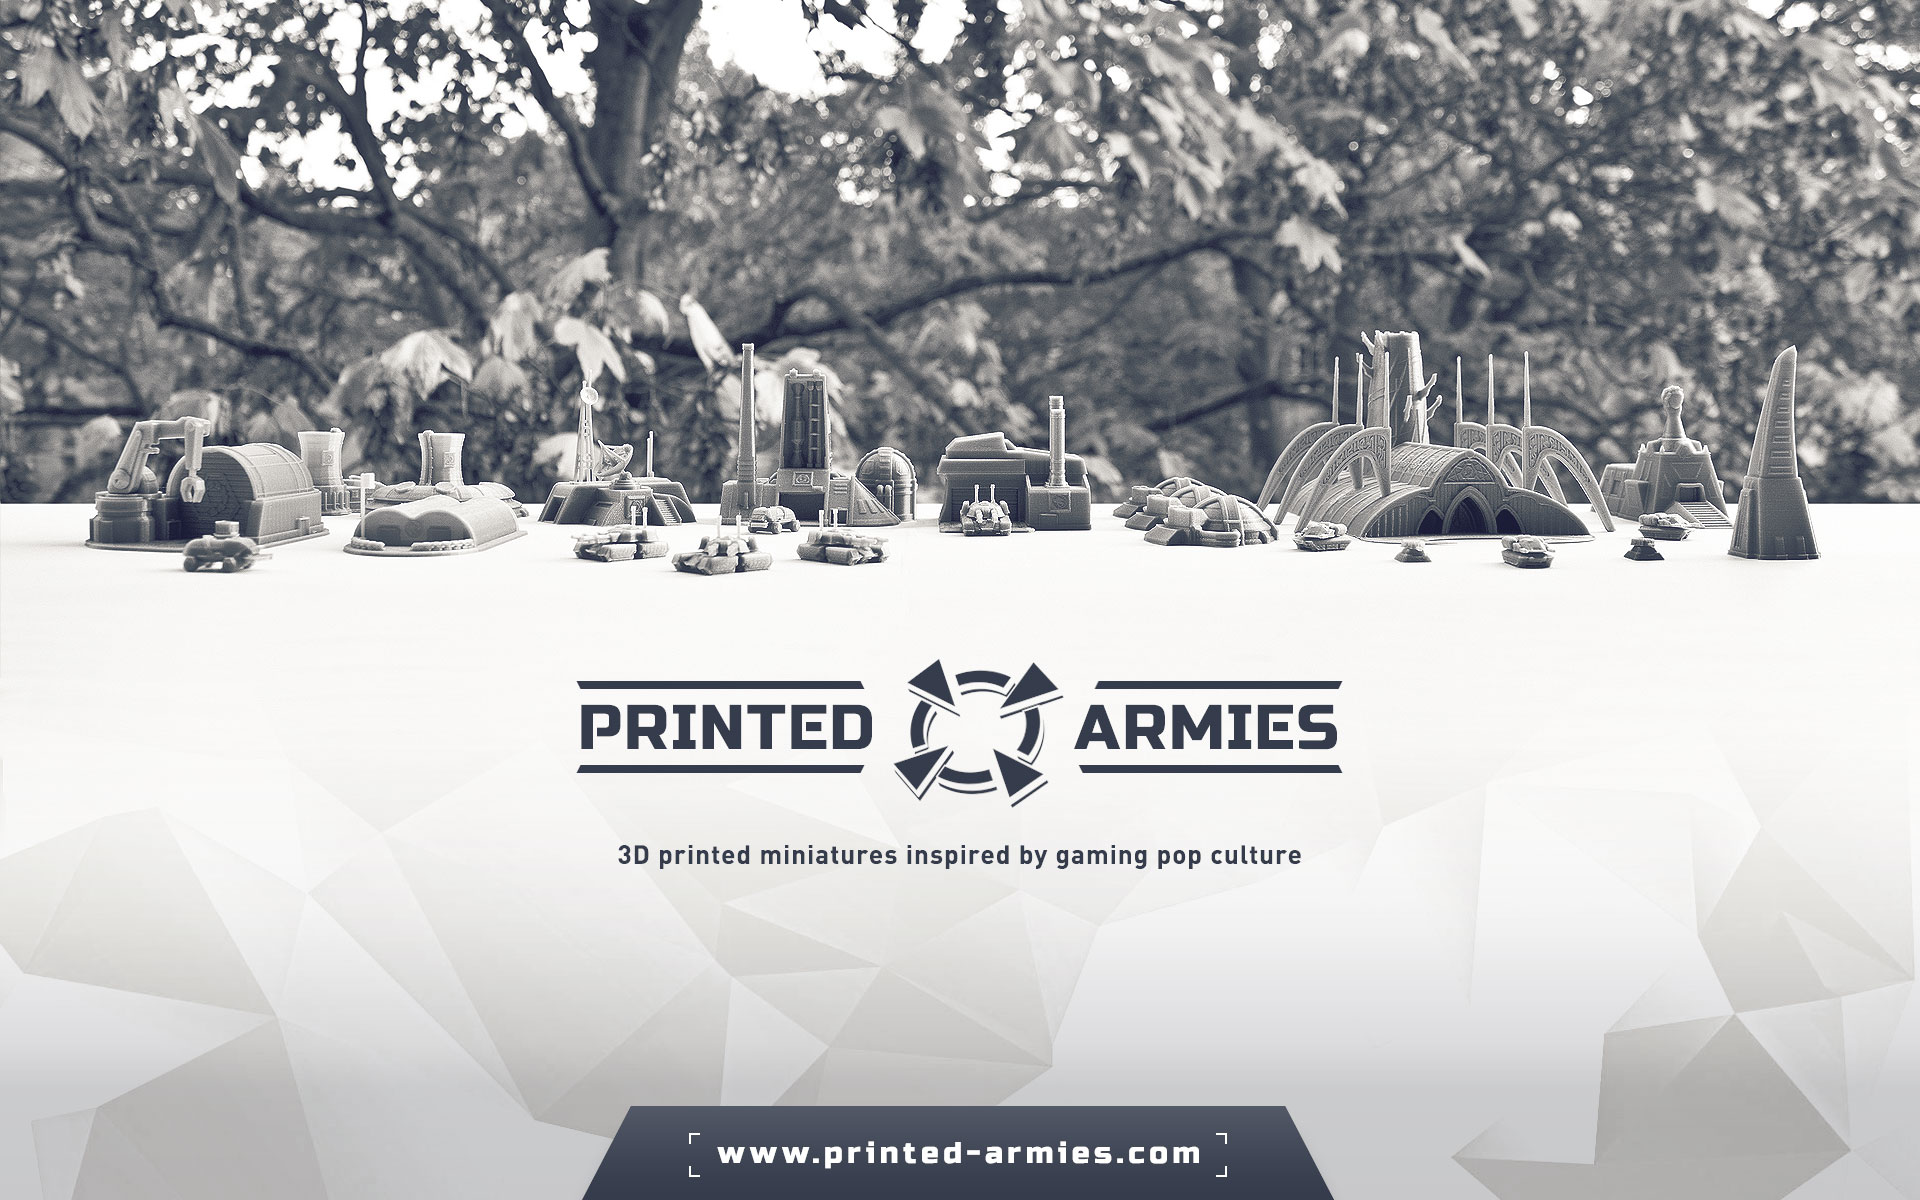 printed-armies-wallpaper02